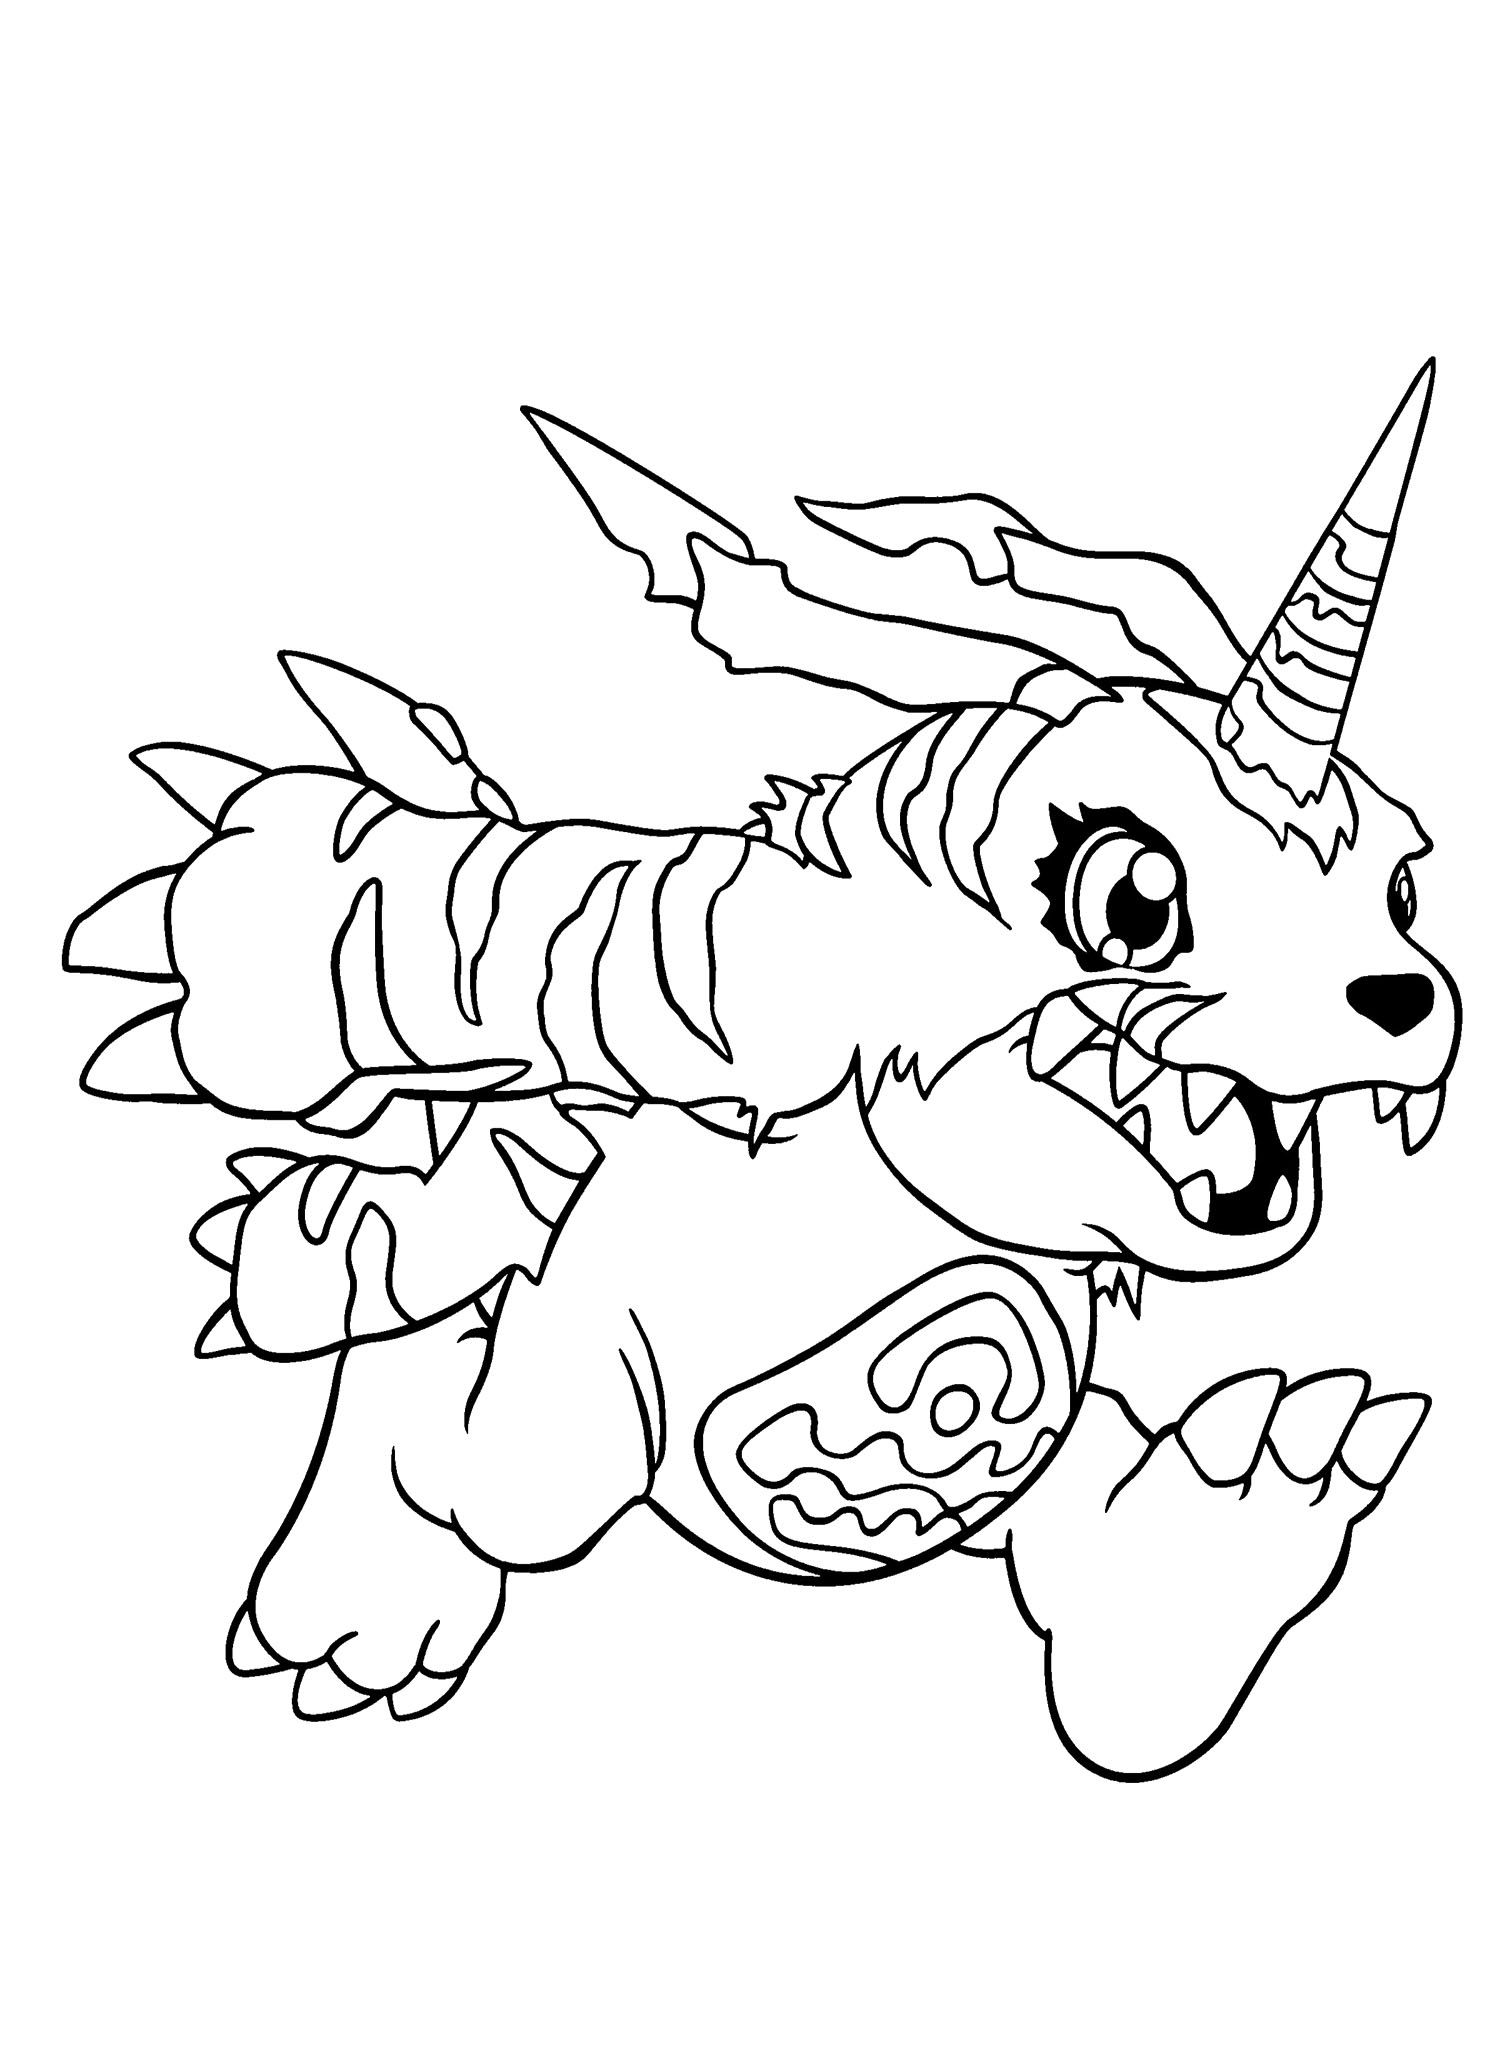 Gabumon Running Coloring Page